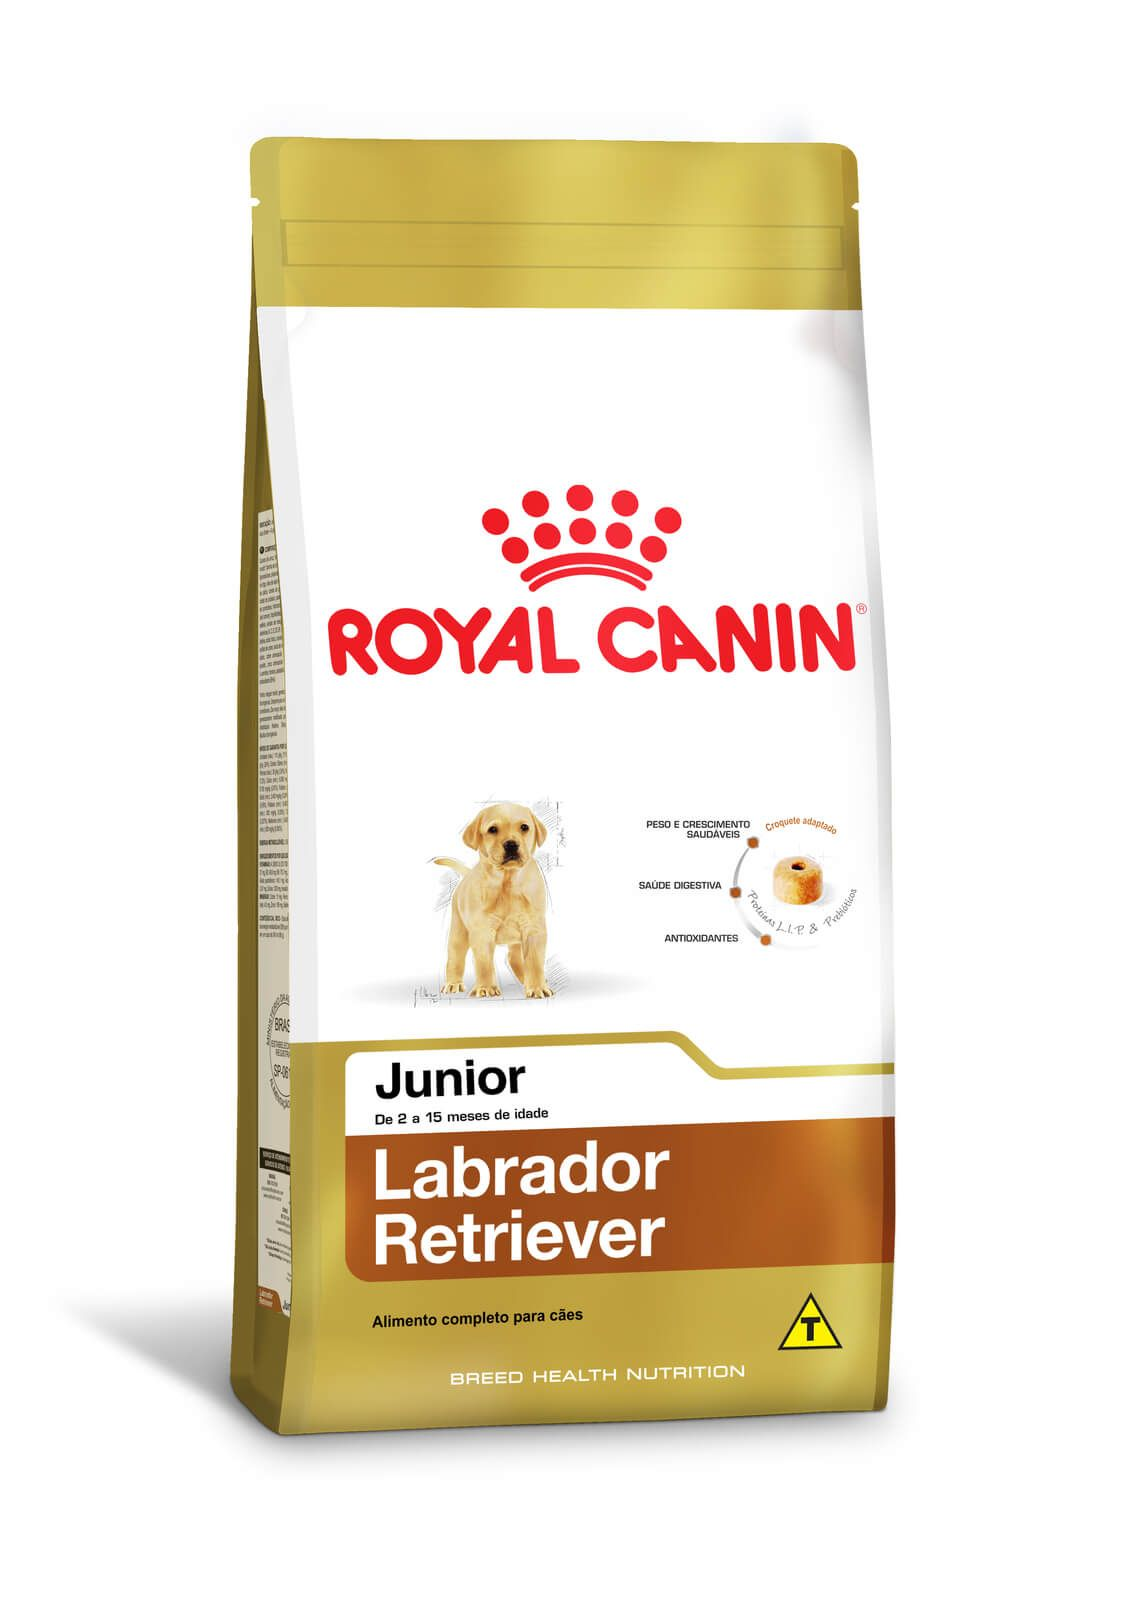 Ração Royal Canin Labrador Retriever Junior 12kg